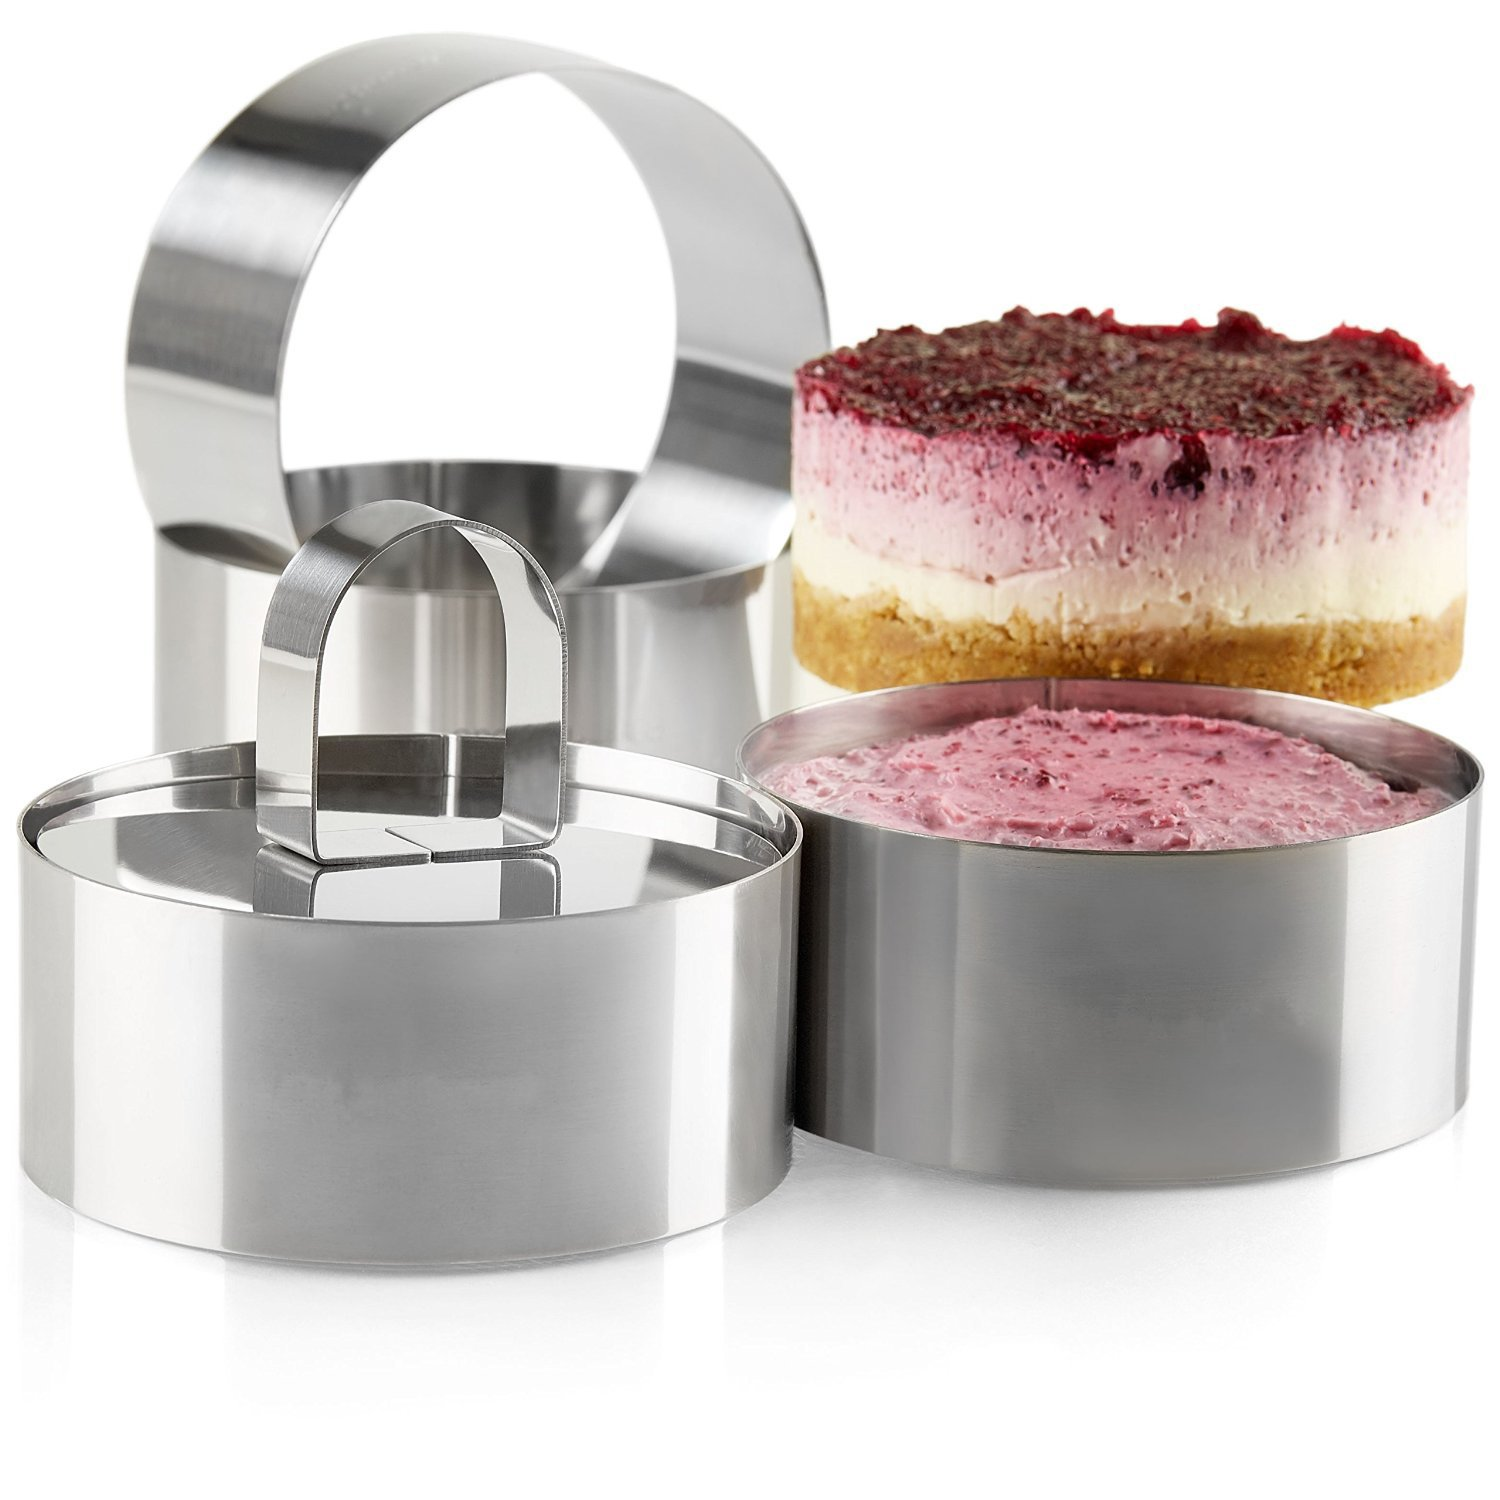 Uncle Jack Professional Stainless Steel Food Tower Presentation Cooking Rings with Food Press-Round Forms(set of 2)